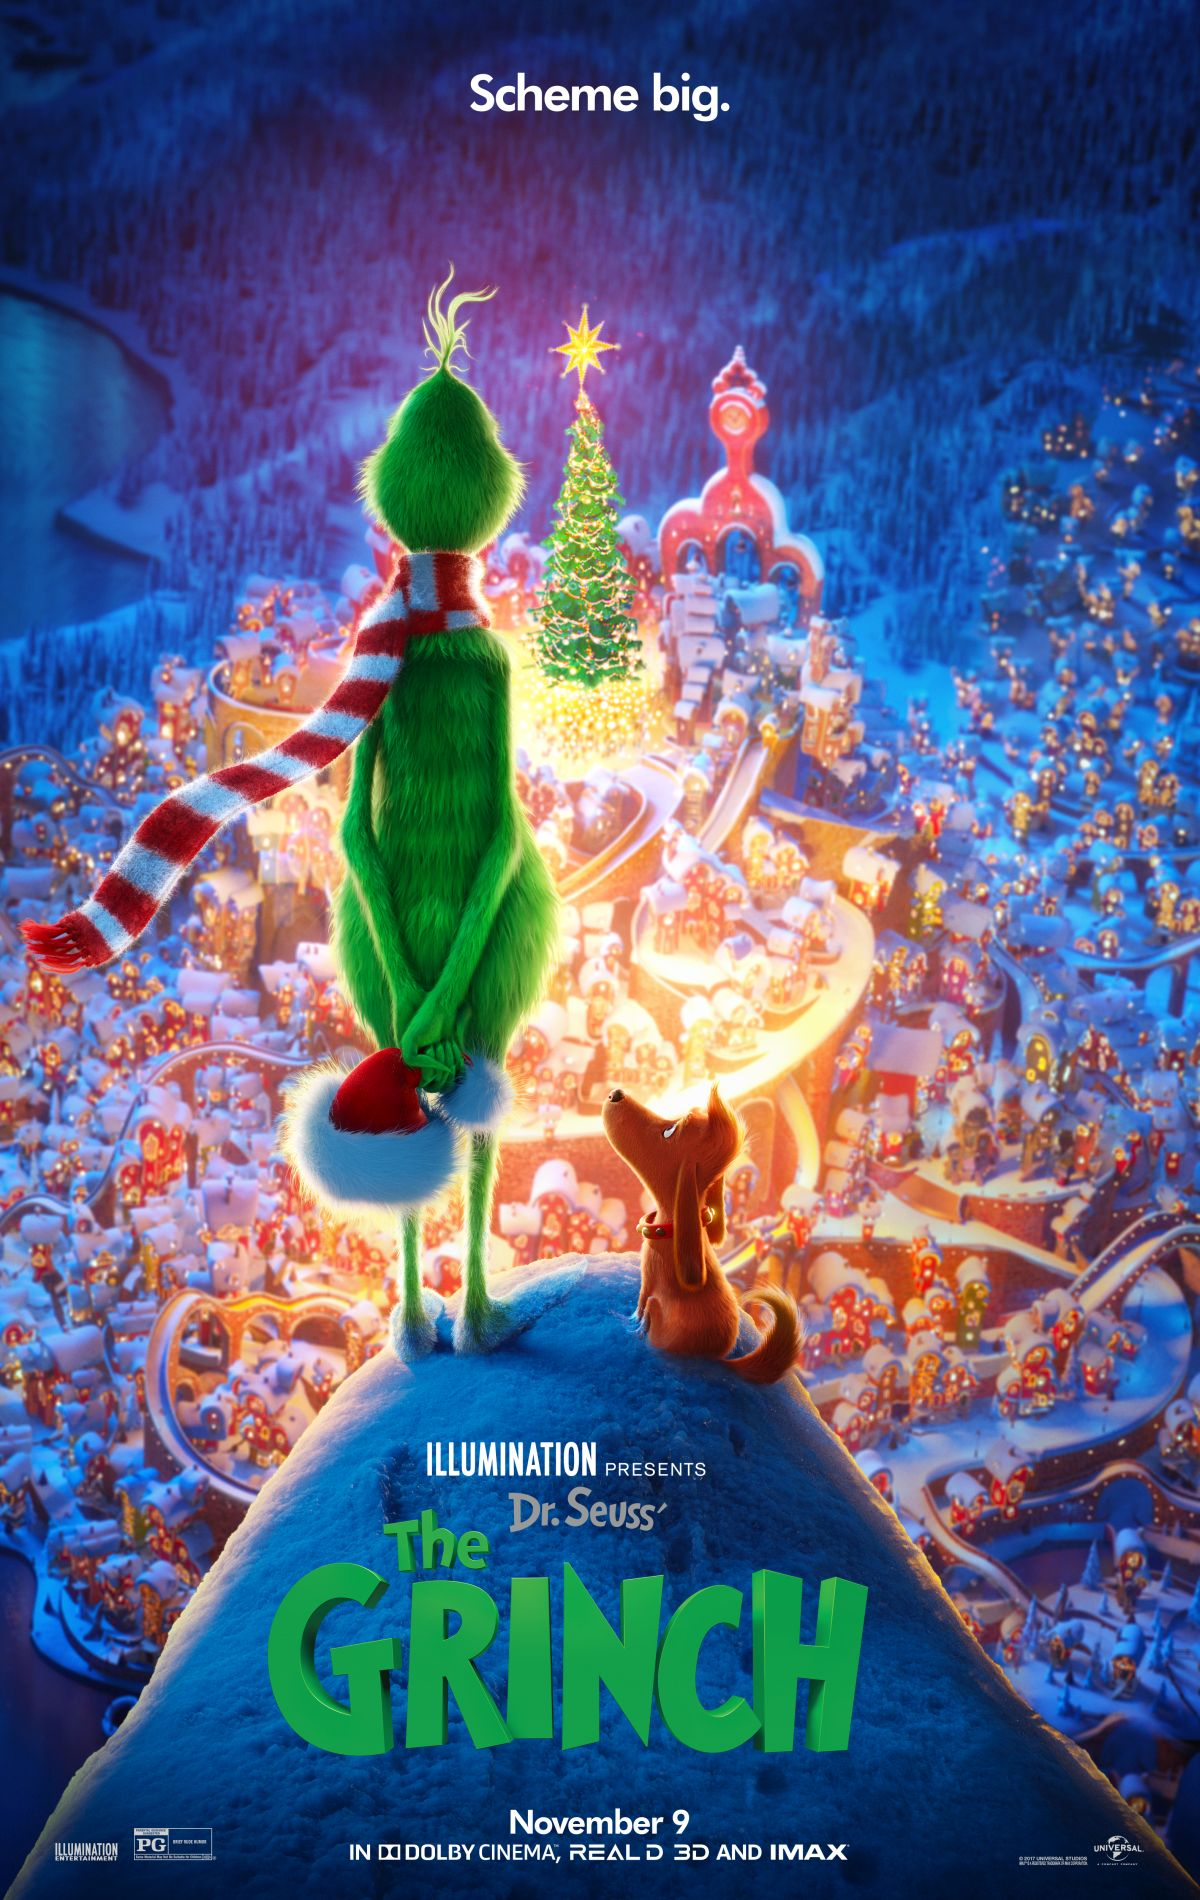 Plakat promujący film The Grinch